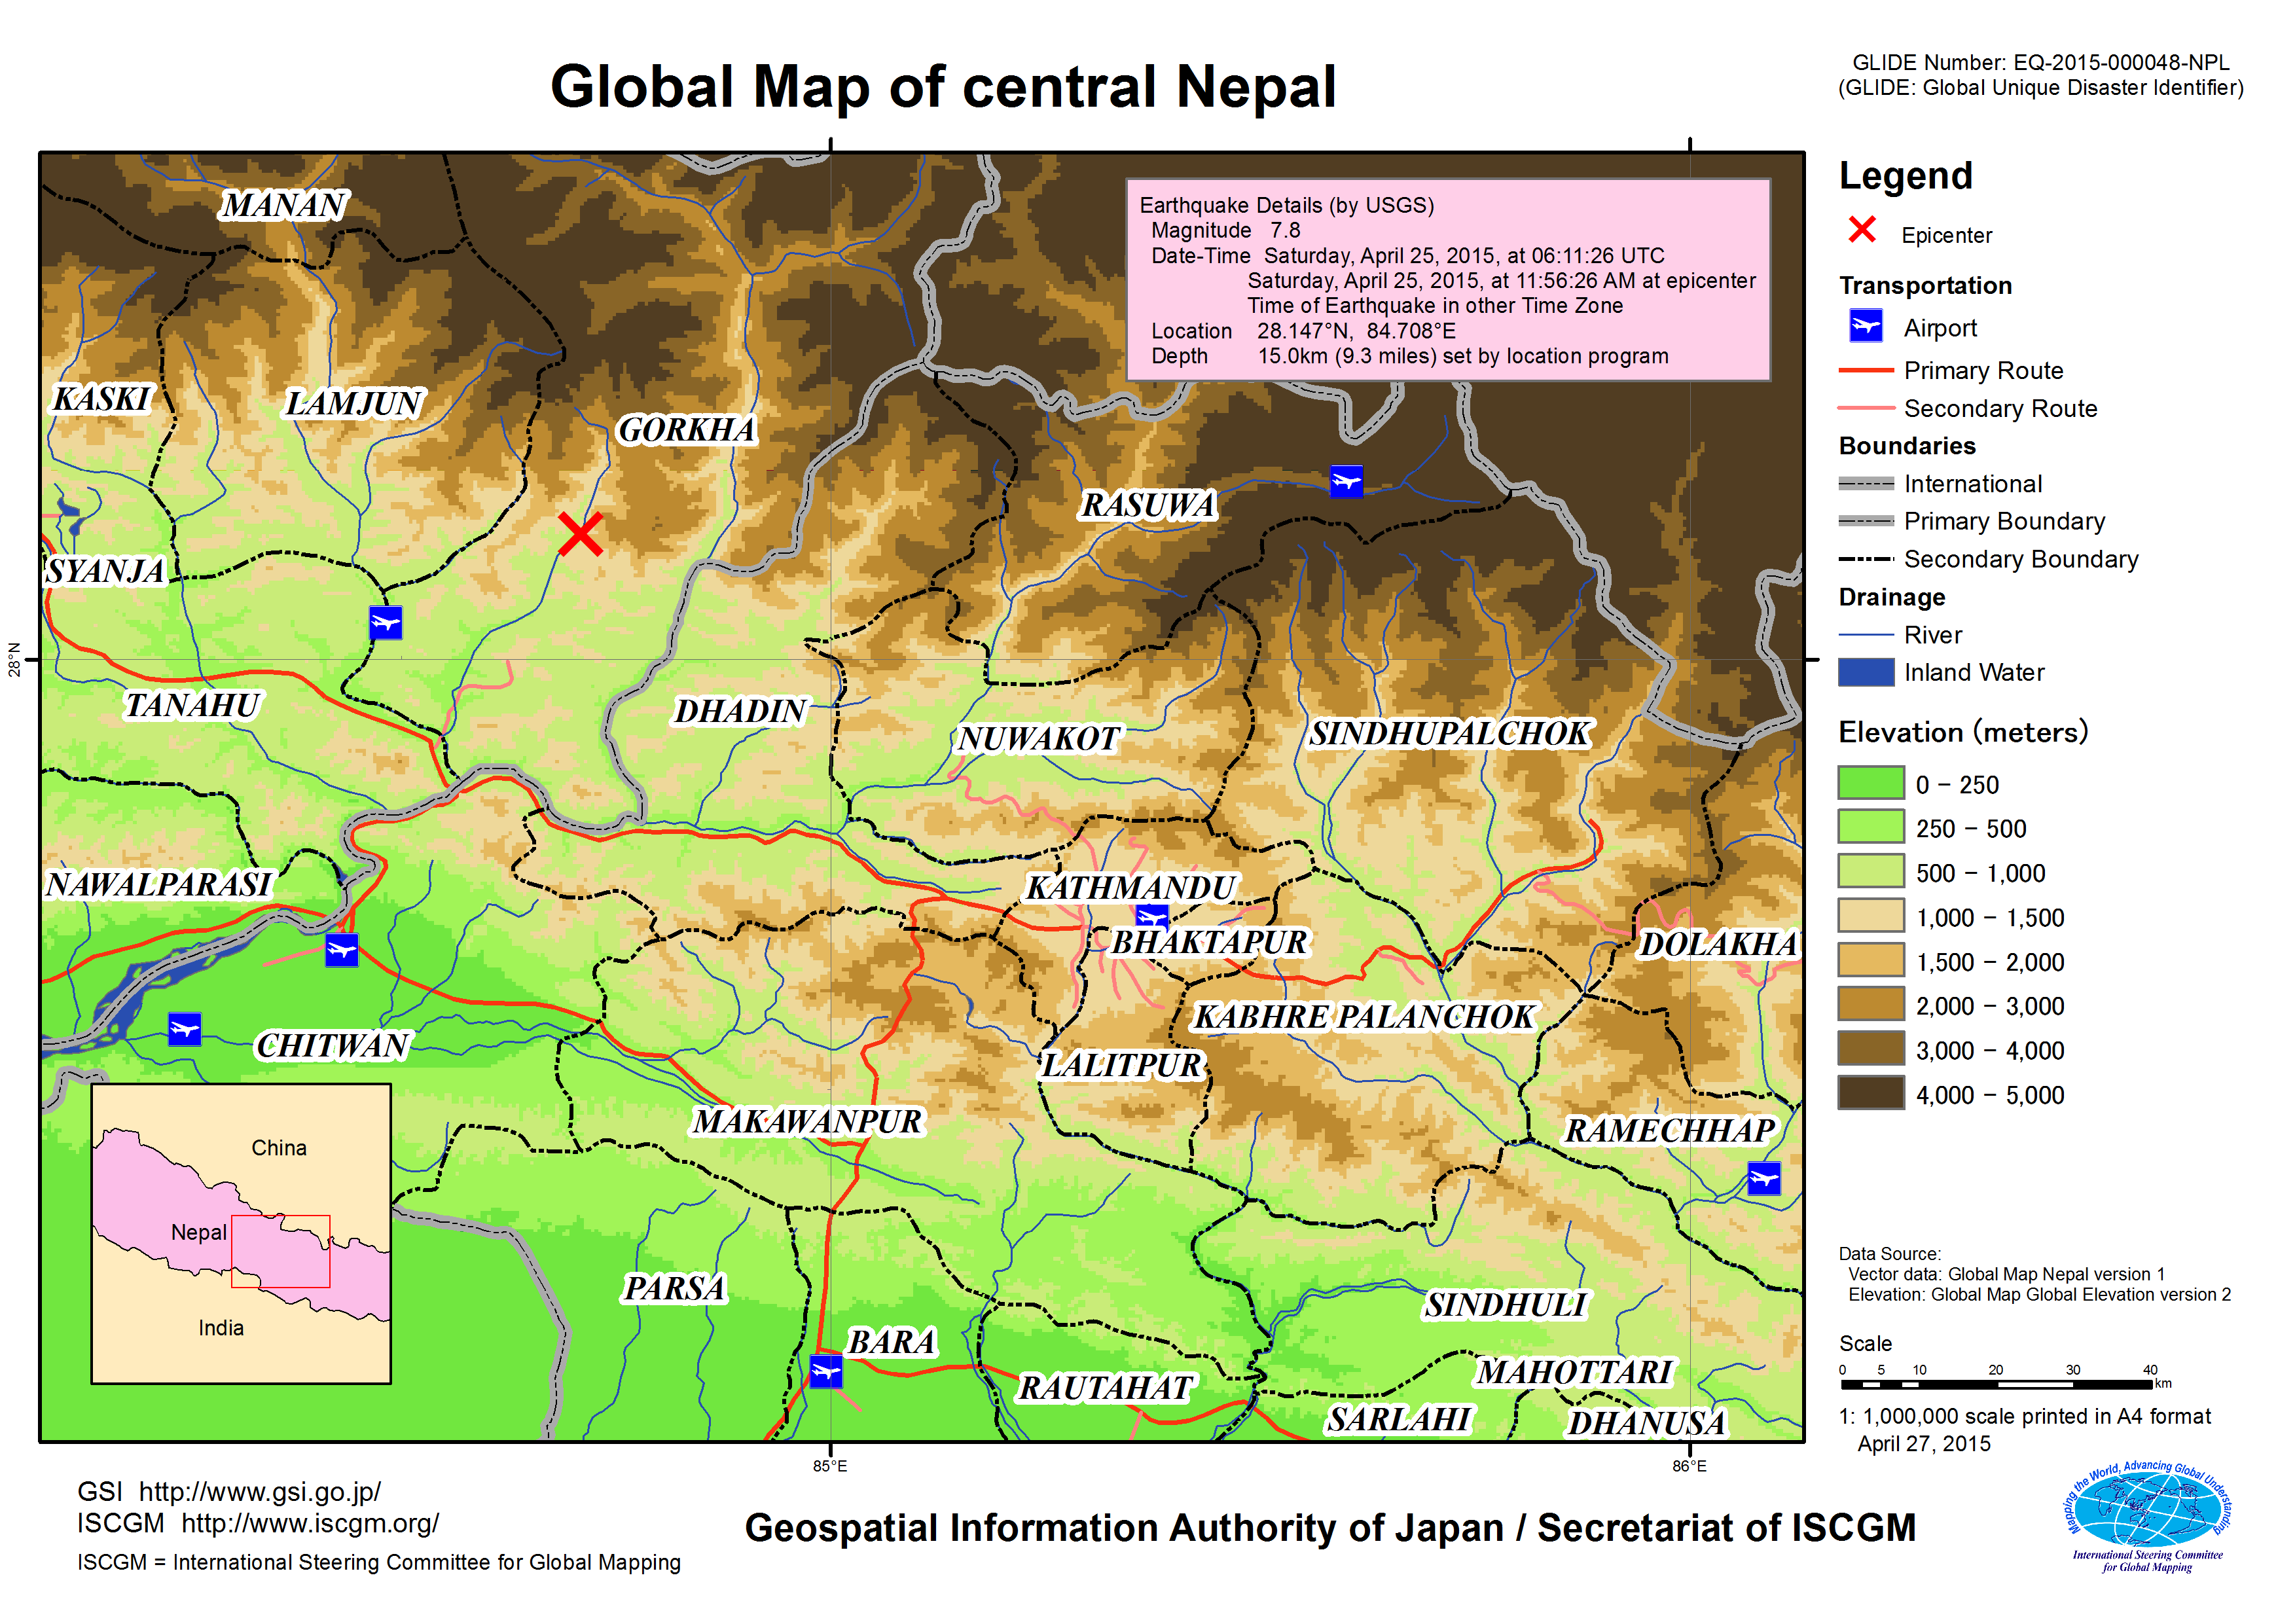 Nepal Elevation Map.Disaster Caused By The Earthquake In Central Nepal April 2015 Gsi